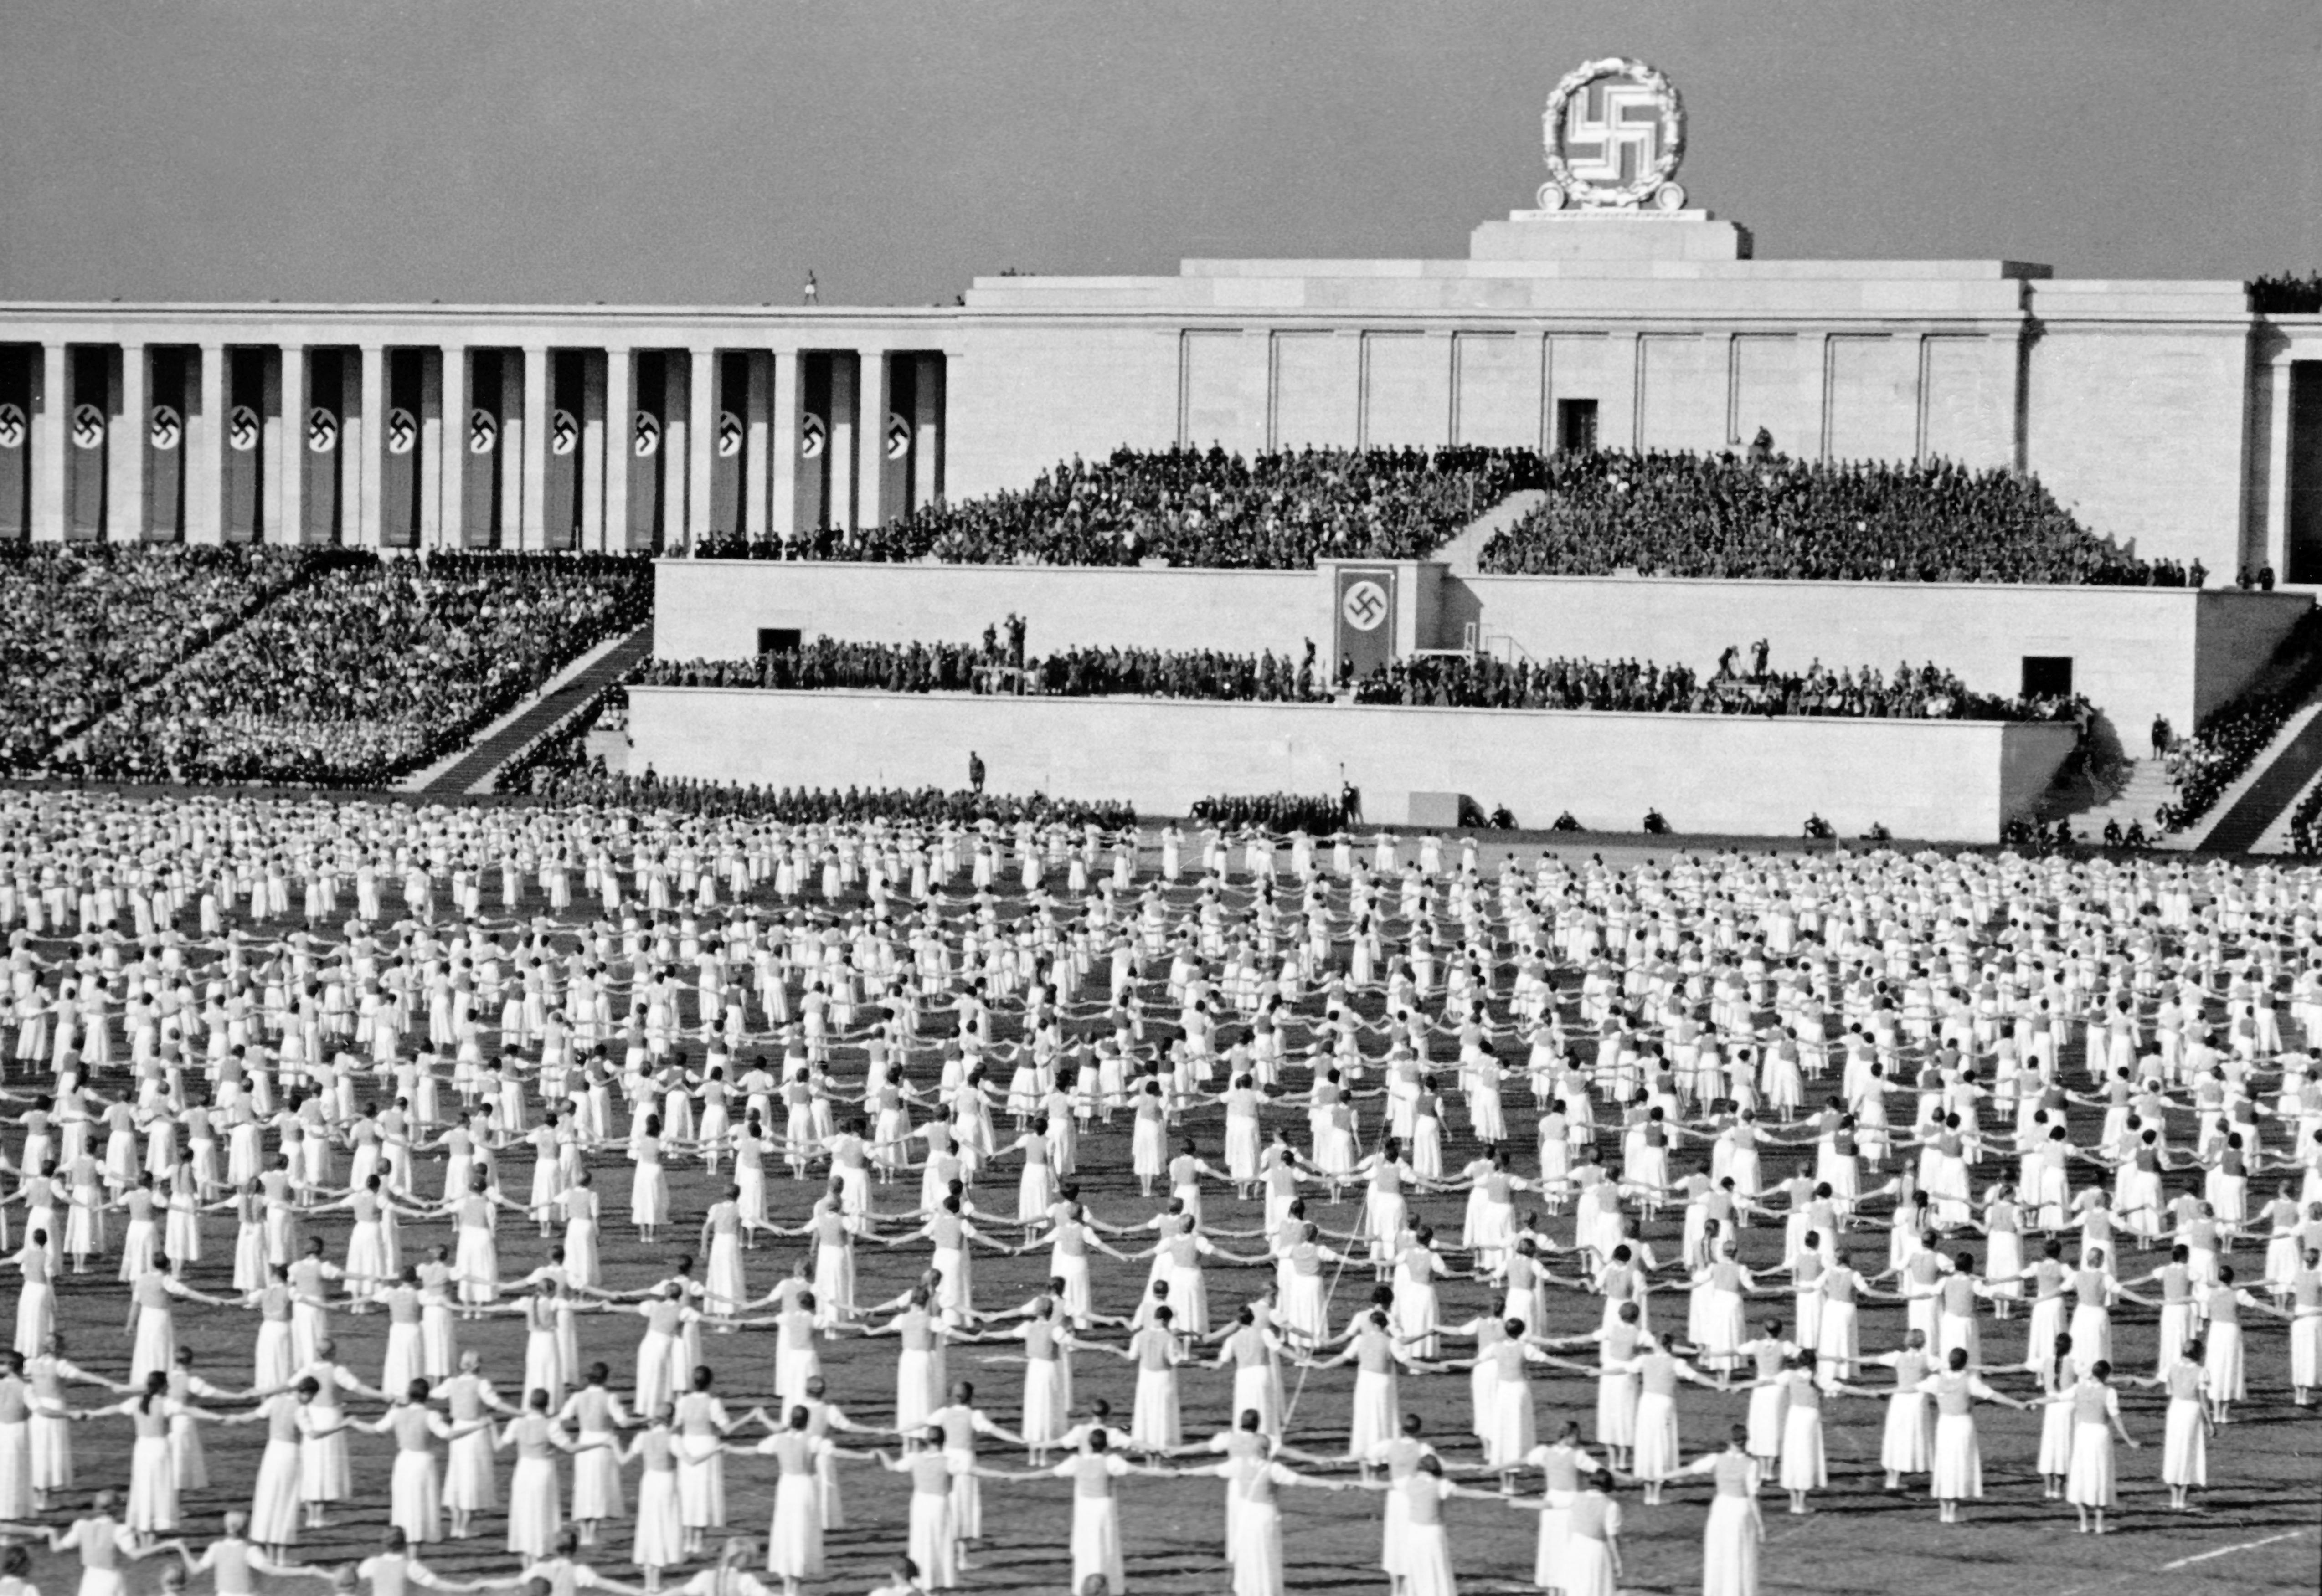 E8PHX2 Nuremberg Rally in Nuremberg, Germany - Events on the occasion of 'Day of the Community' on Zeppelin Field, here 5,000 members of the League of German Girls (BDM) present folk dances. In the background the grandstand. (Flaws in quality due to the historic picture copy) Photo: Berliner Verlag/Archive - NO WIRE SERVICE - Credit: Alamy